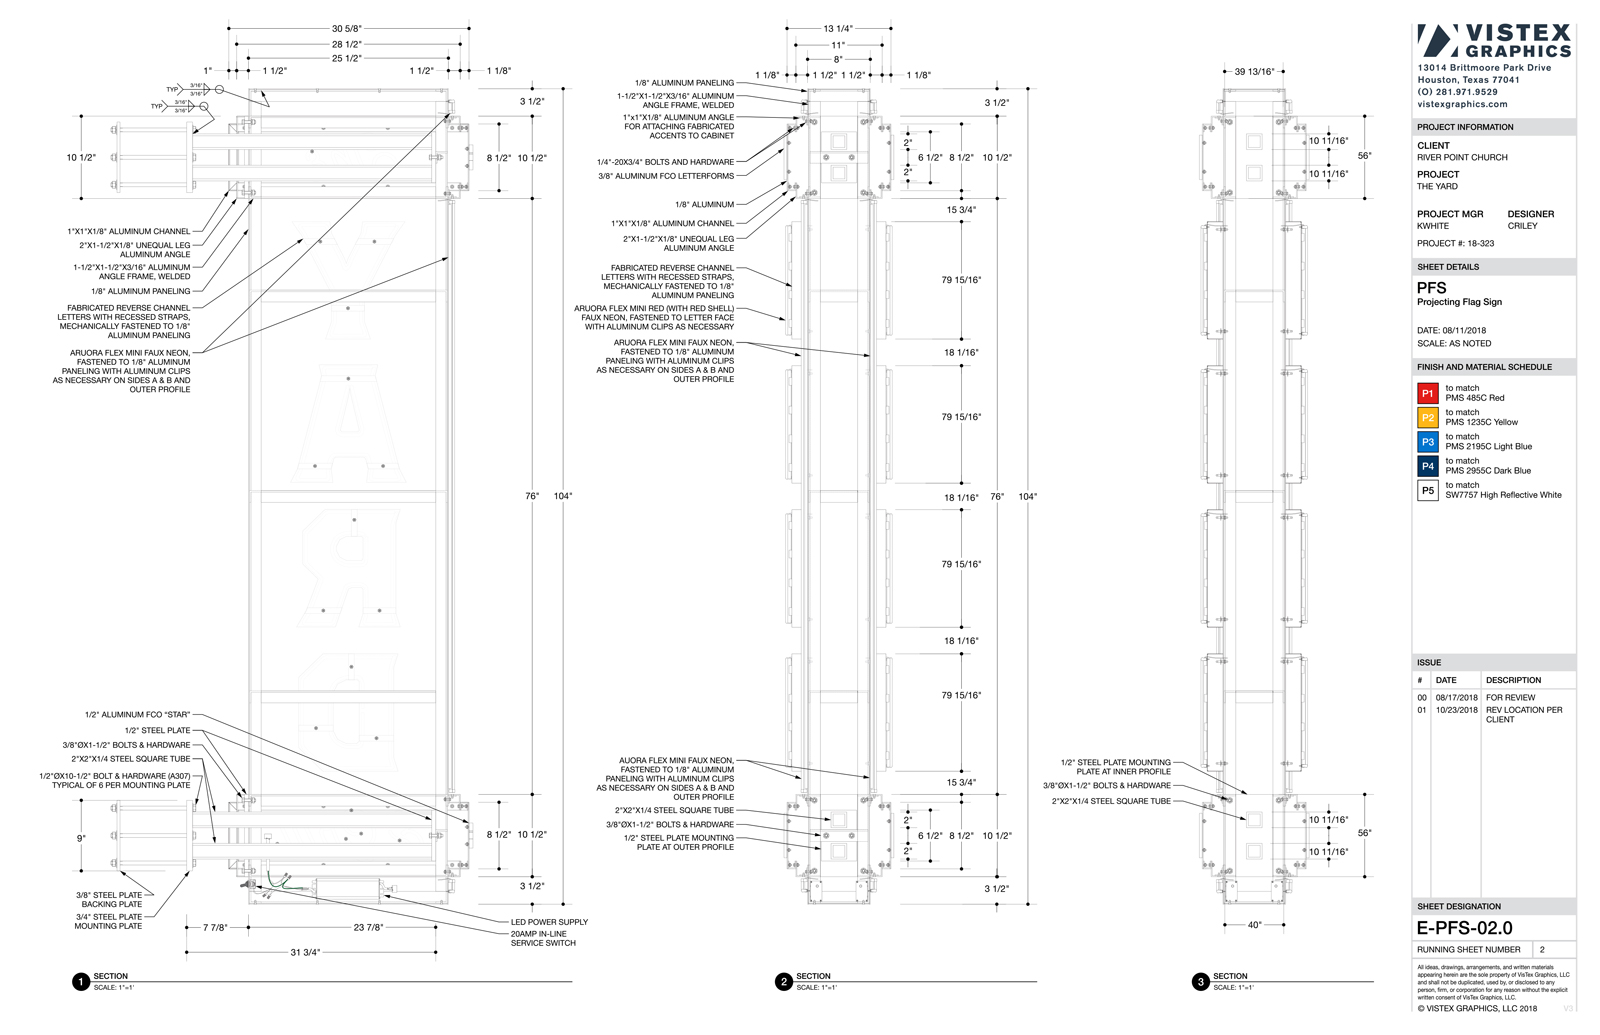 Example of fabrication drawing quality